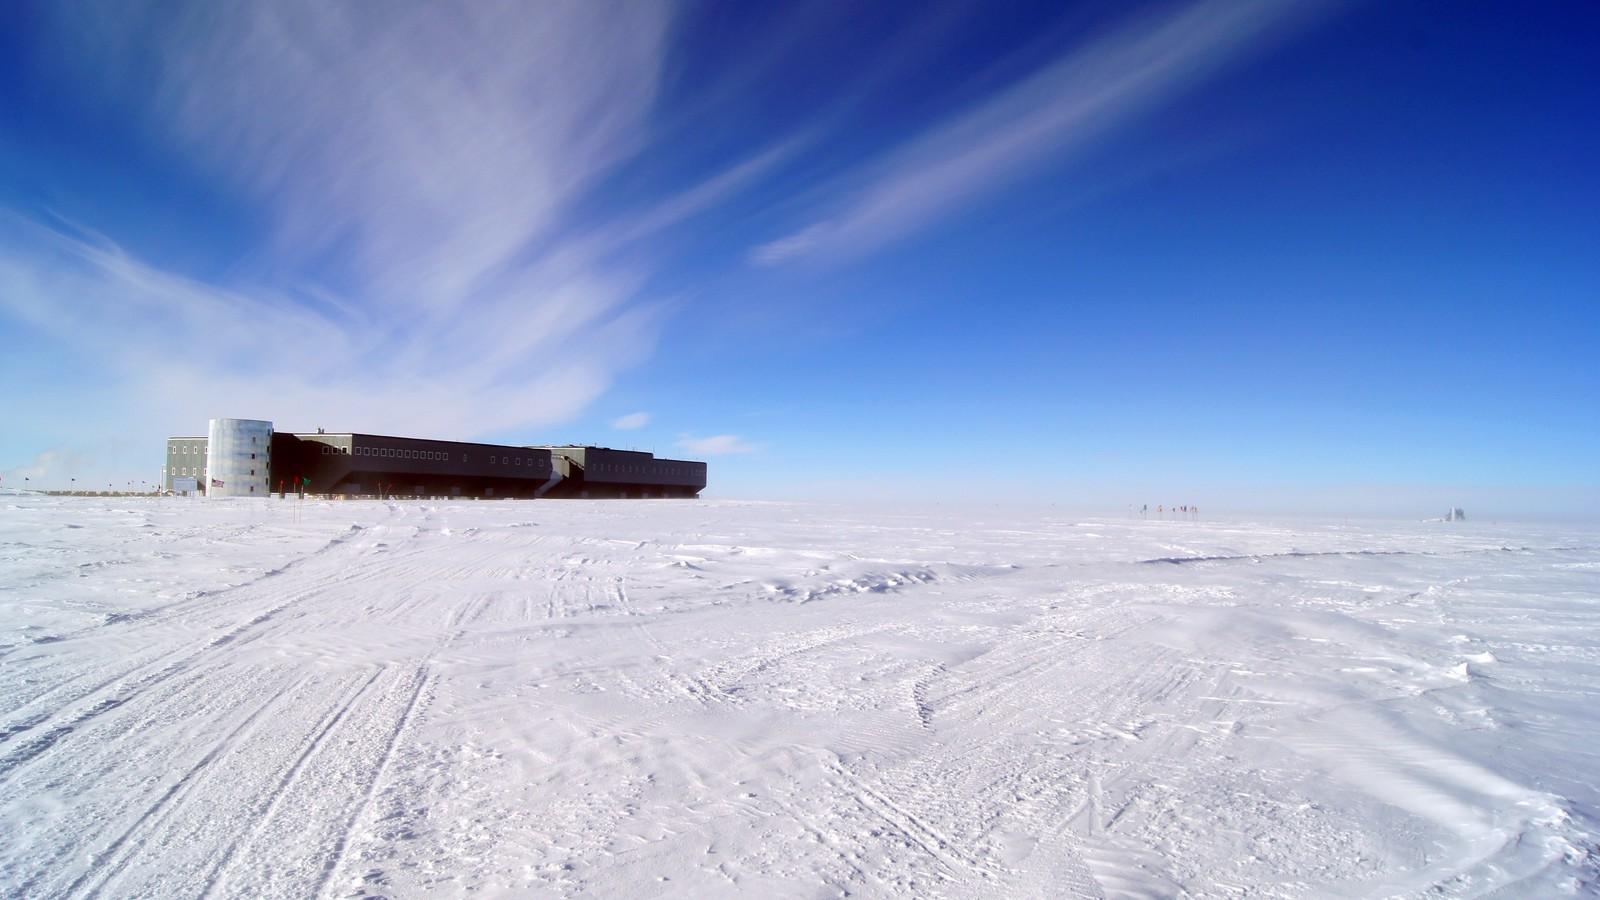 What's It Like to Spend Winter at the South Pole?